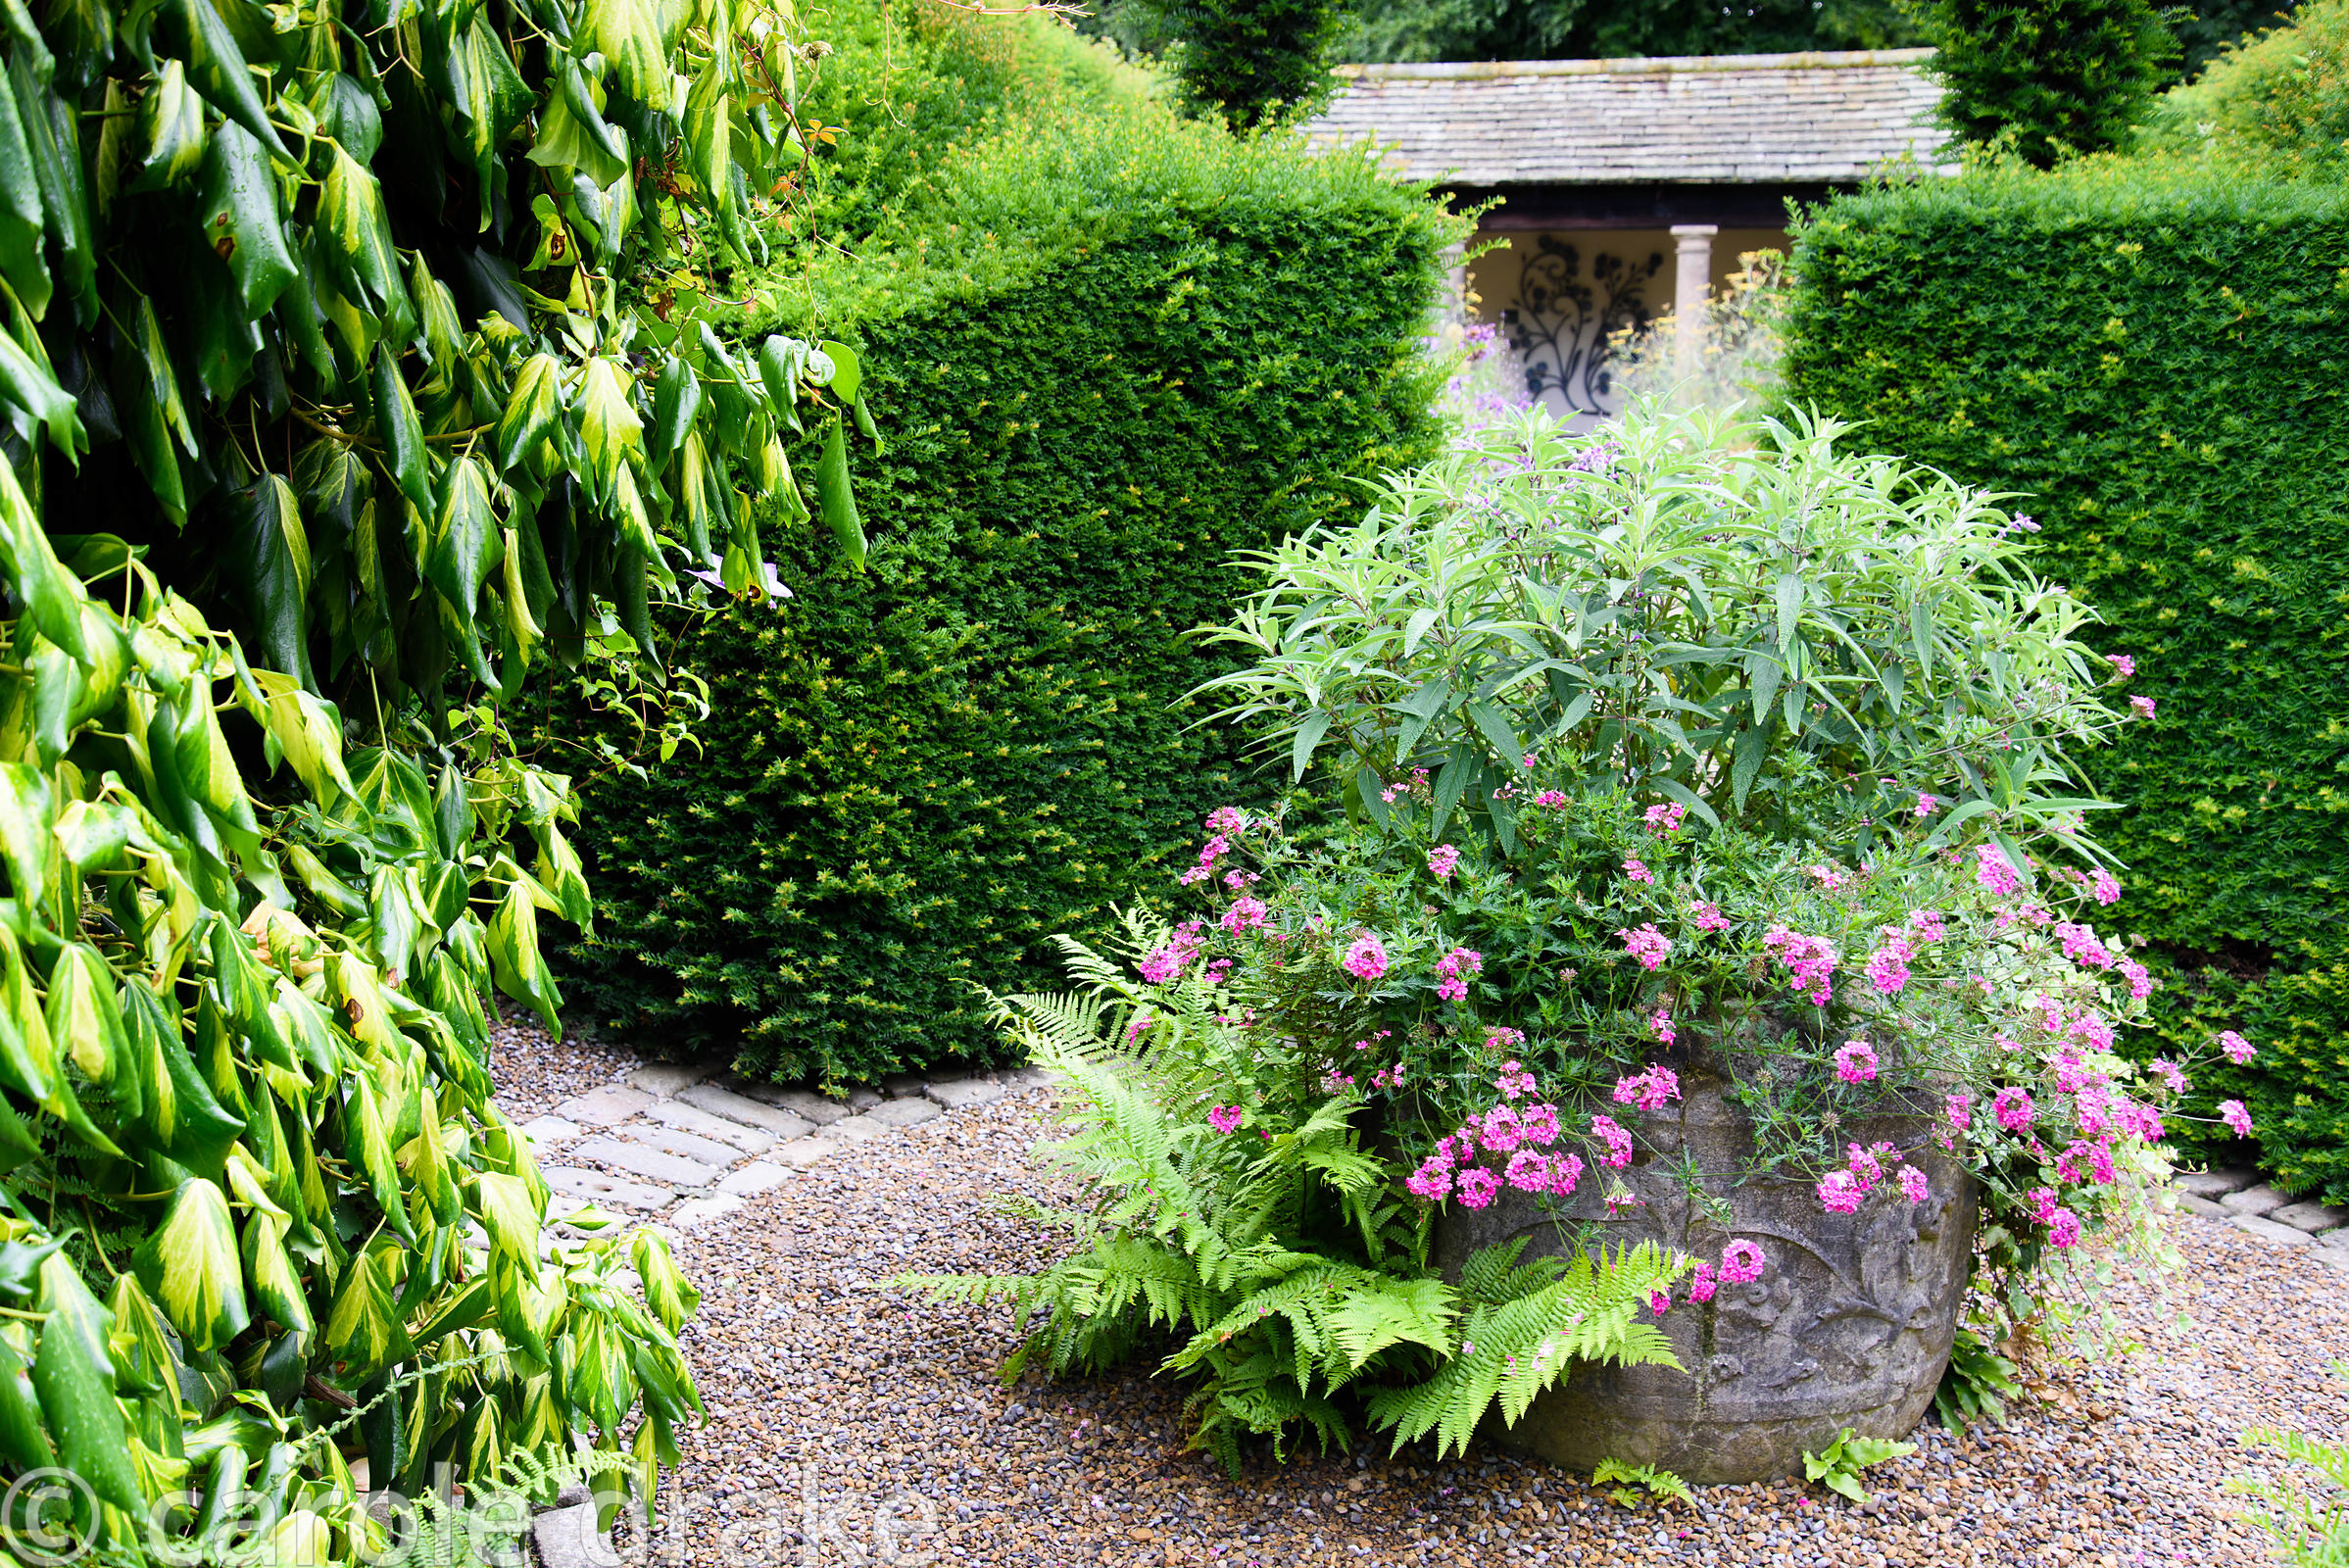 Container planted with Salvia leucantha and pink verbenas with self sown ferns growing in gravel below and framed by yew hedg...